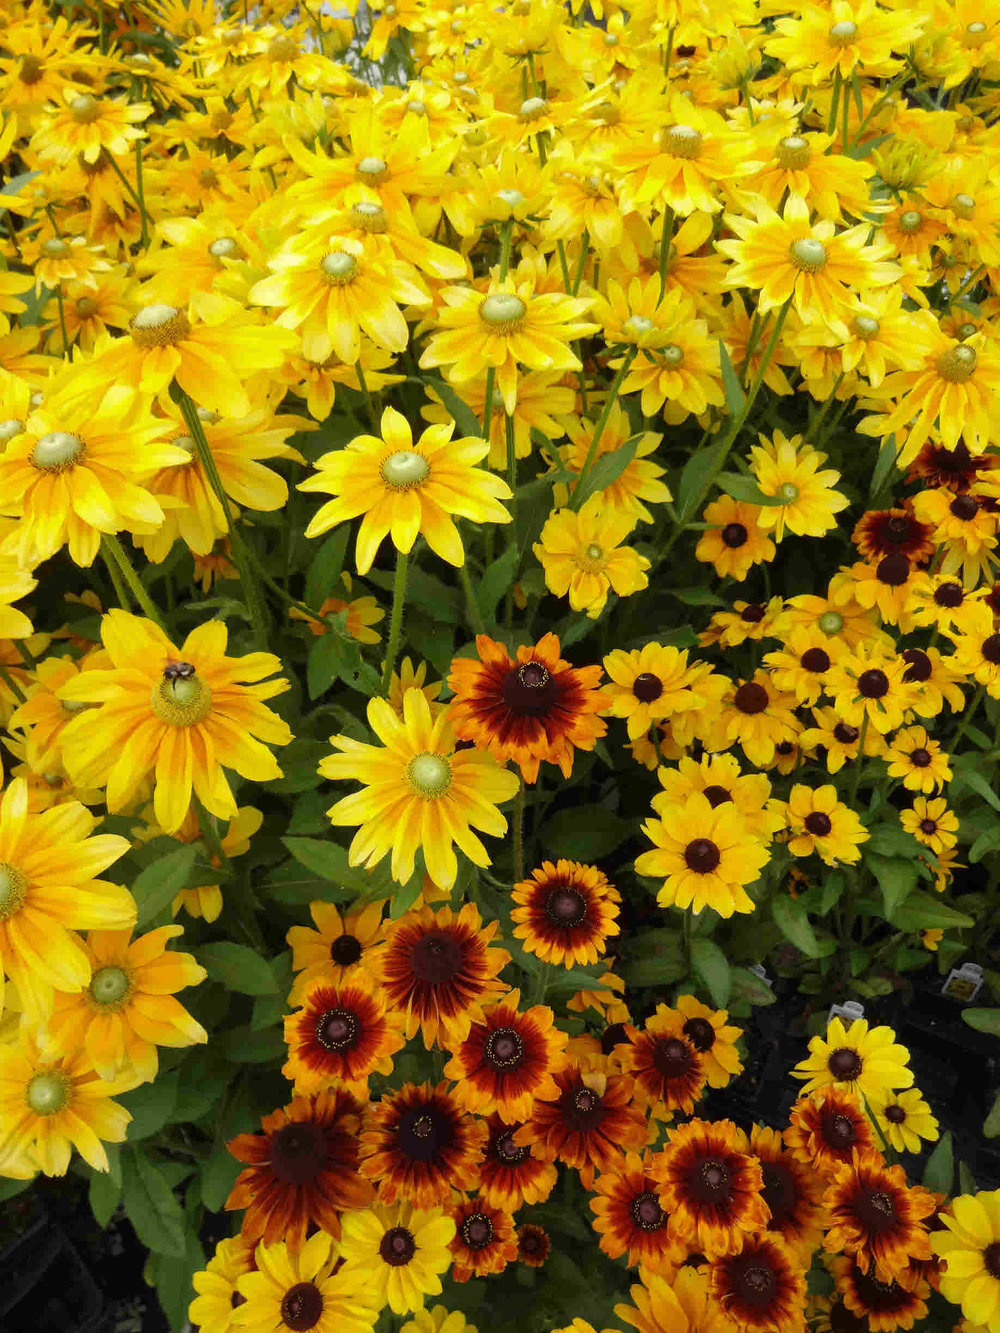 Top 5 yellow flowers vern goers greenhouse rudbeckia is another popular flower for our lists this perennial is a native to illinois and blooms later in the summer through the fall giving you bright mightylinksfo